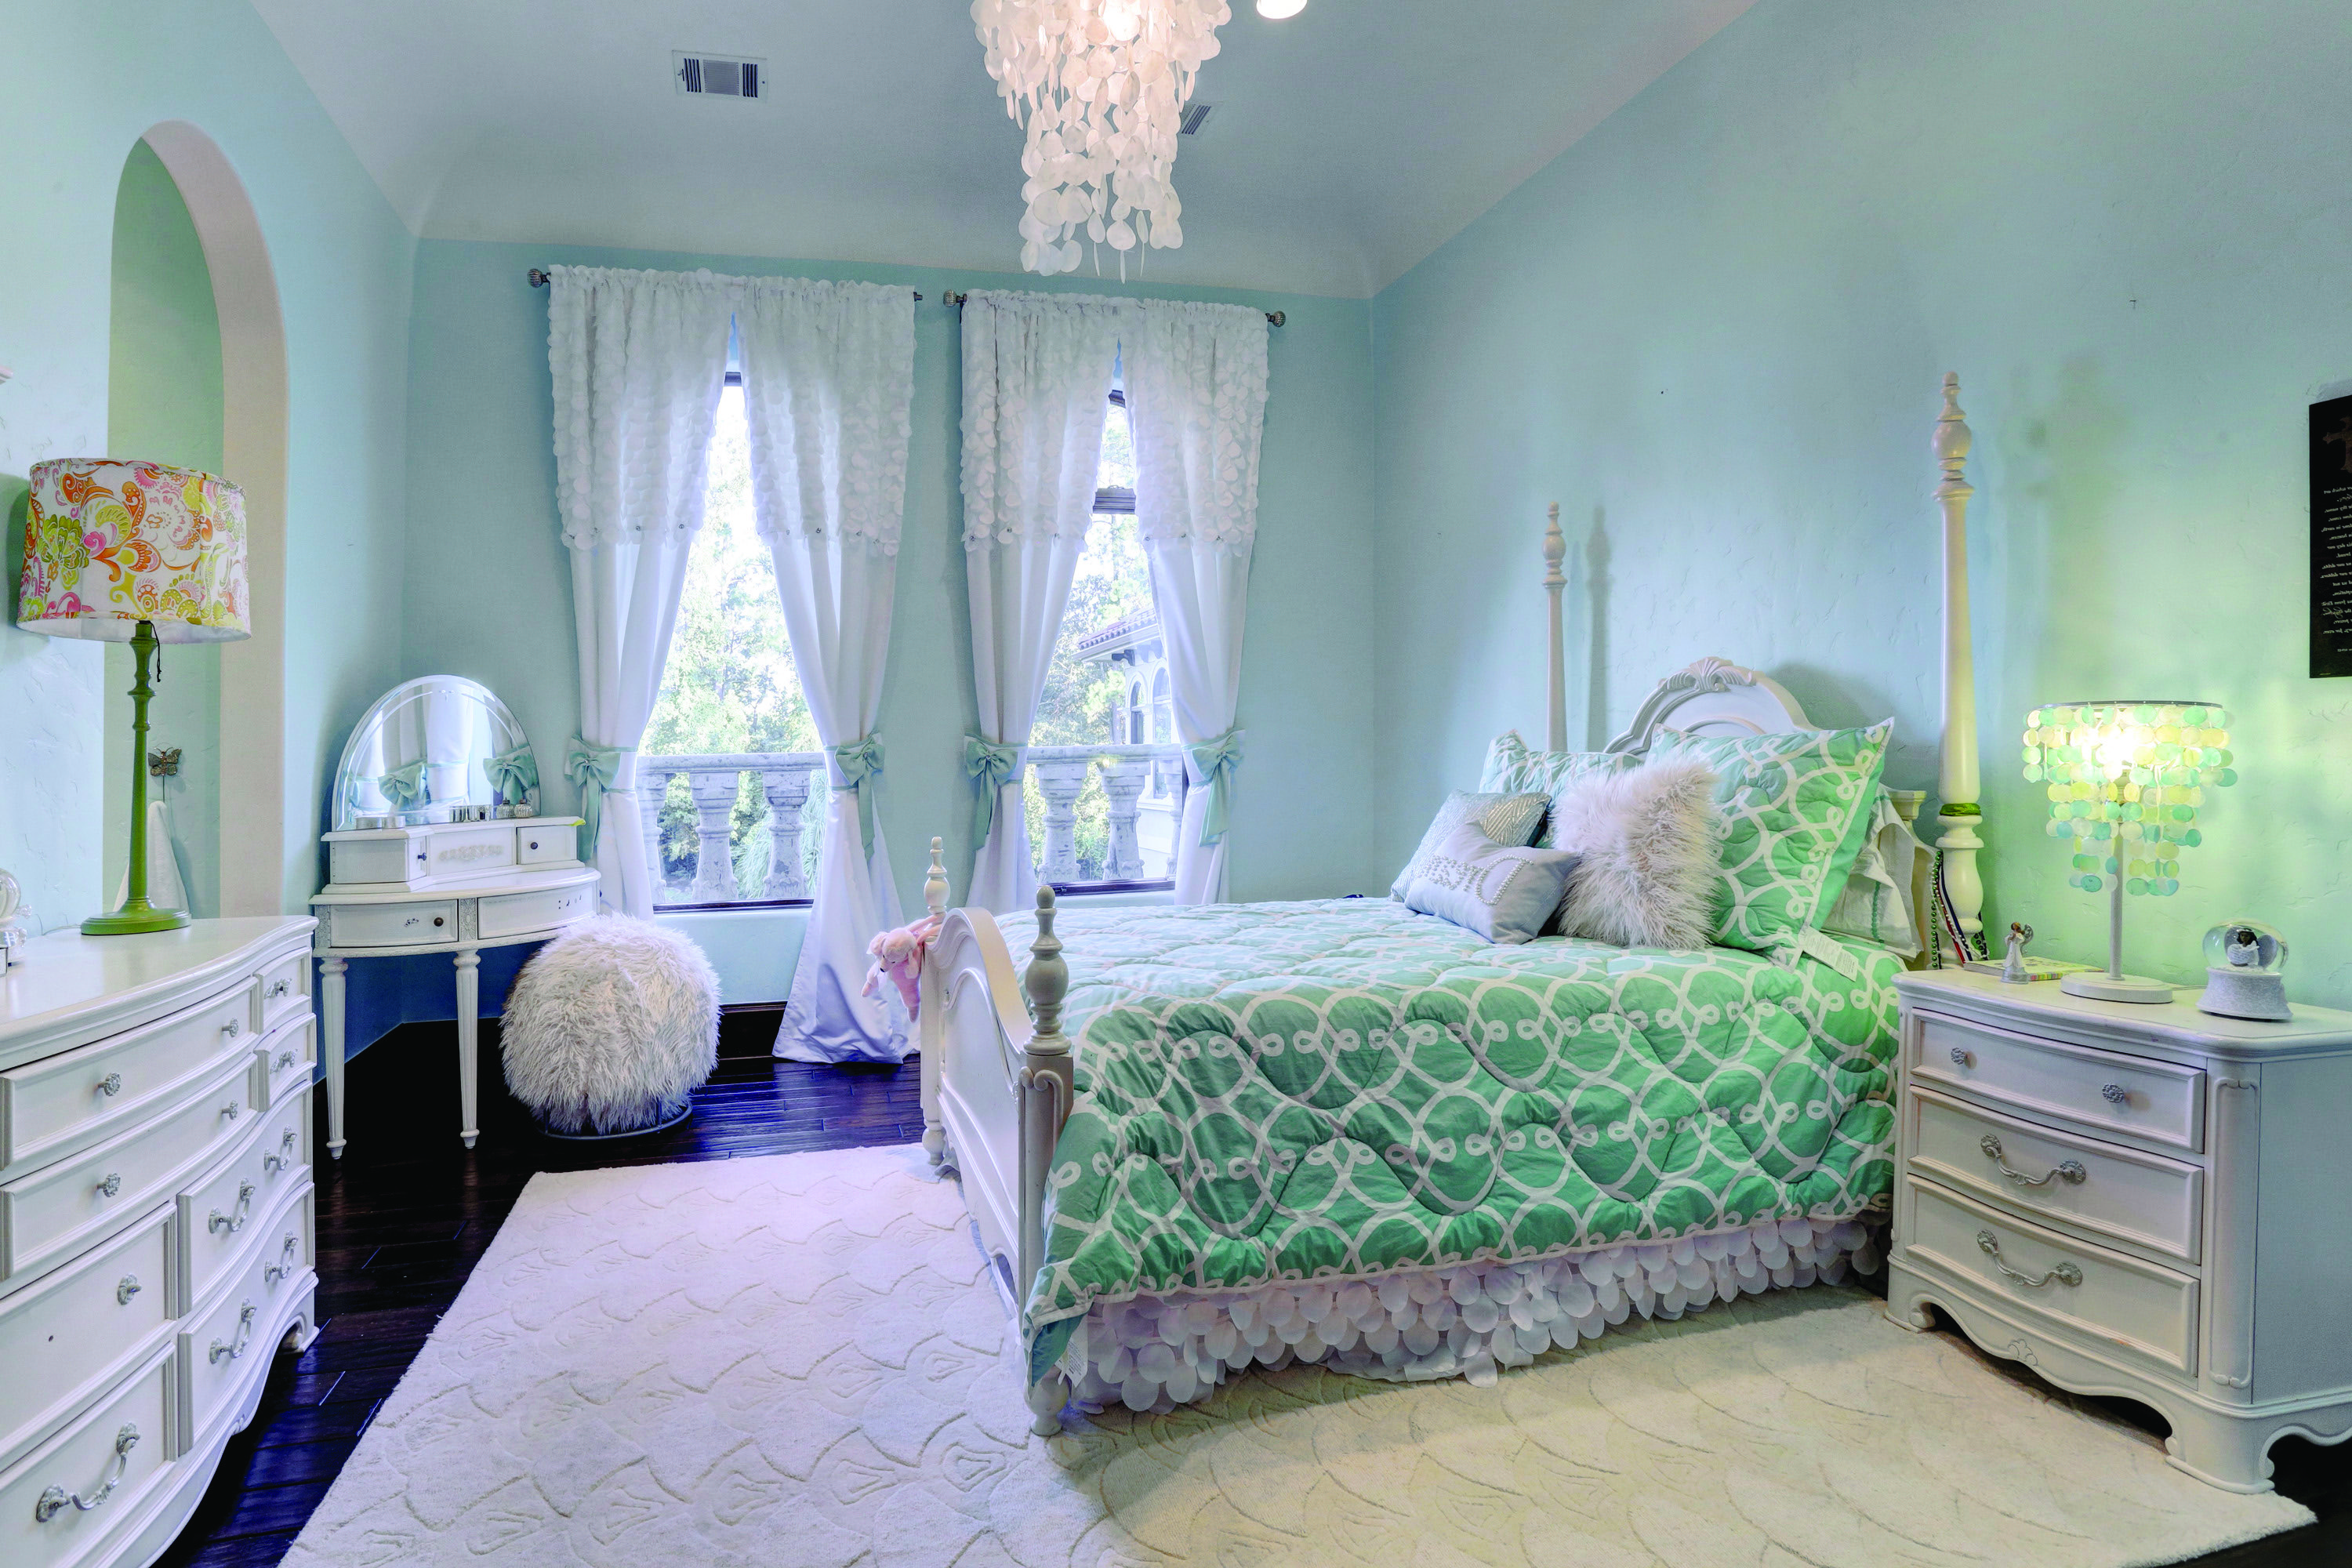 Blue And White Classic Girl's Bedroom With White Bed (Image 5 of 30)